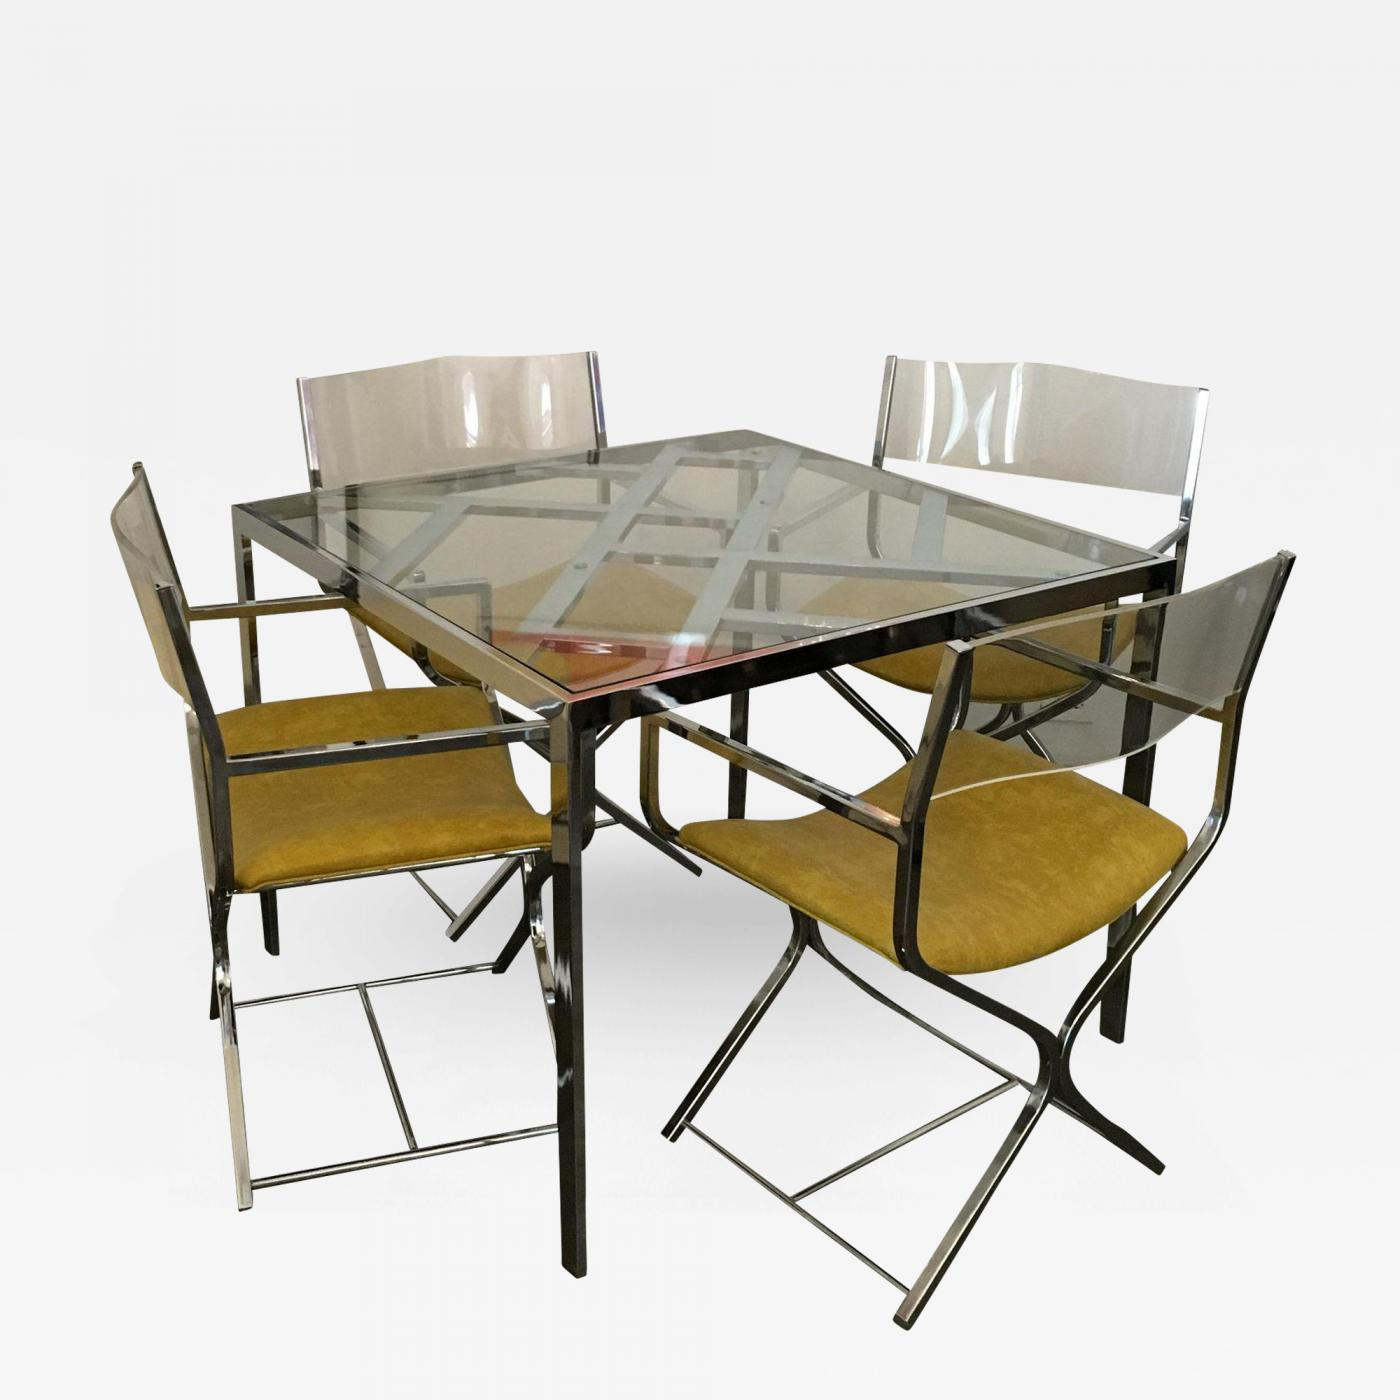 Woburn Dining Table Images Dining Table Ideas : Milo Baughman Chrome Glass Game Dining Table Four Chrome Leather Lucite Armchairs 188059 322422 from sorahana.info size 1400 x 1400 jpeg 119kB